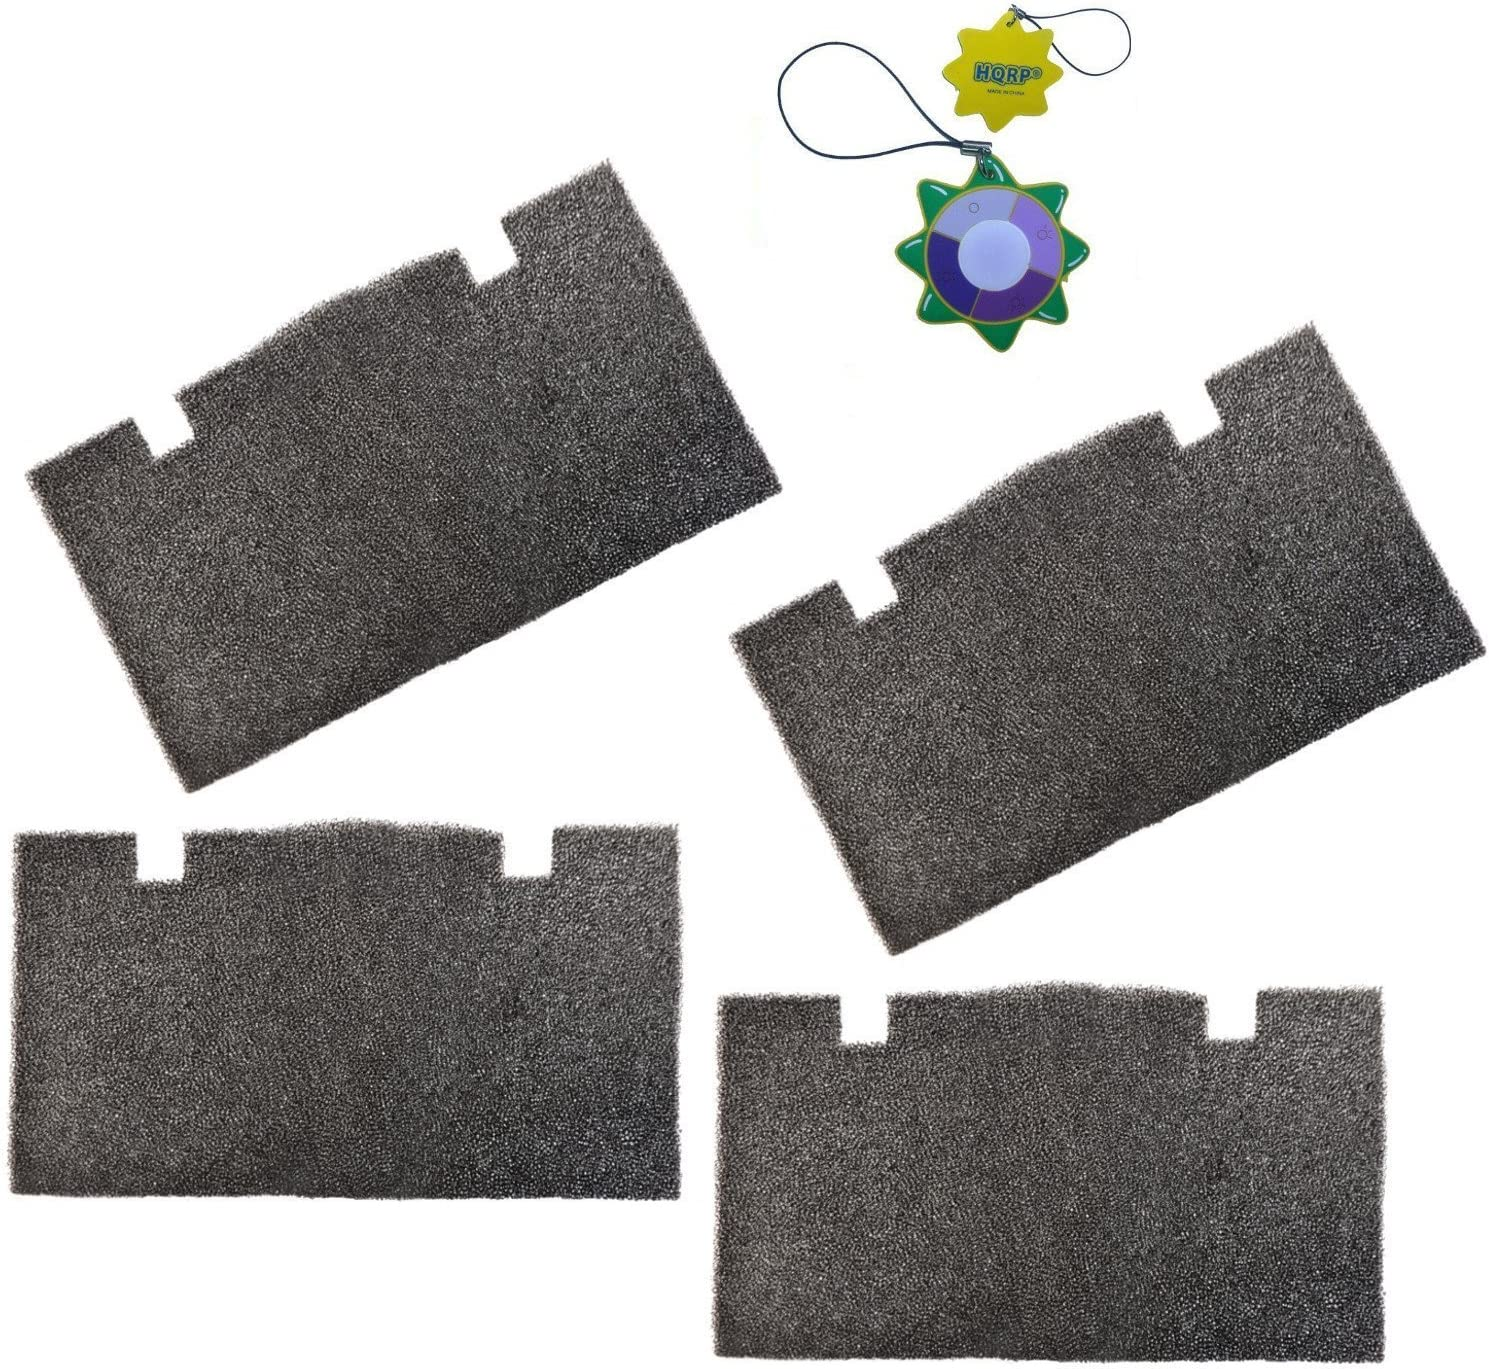 59016 59136 Series Roof Top Air Conditioners /& Heat Pumps 57912 HQRP UV Meter HQRP 4 pcs Foam Air Filter for Dometic Duo Therm Brisk Air 57908 57915